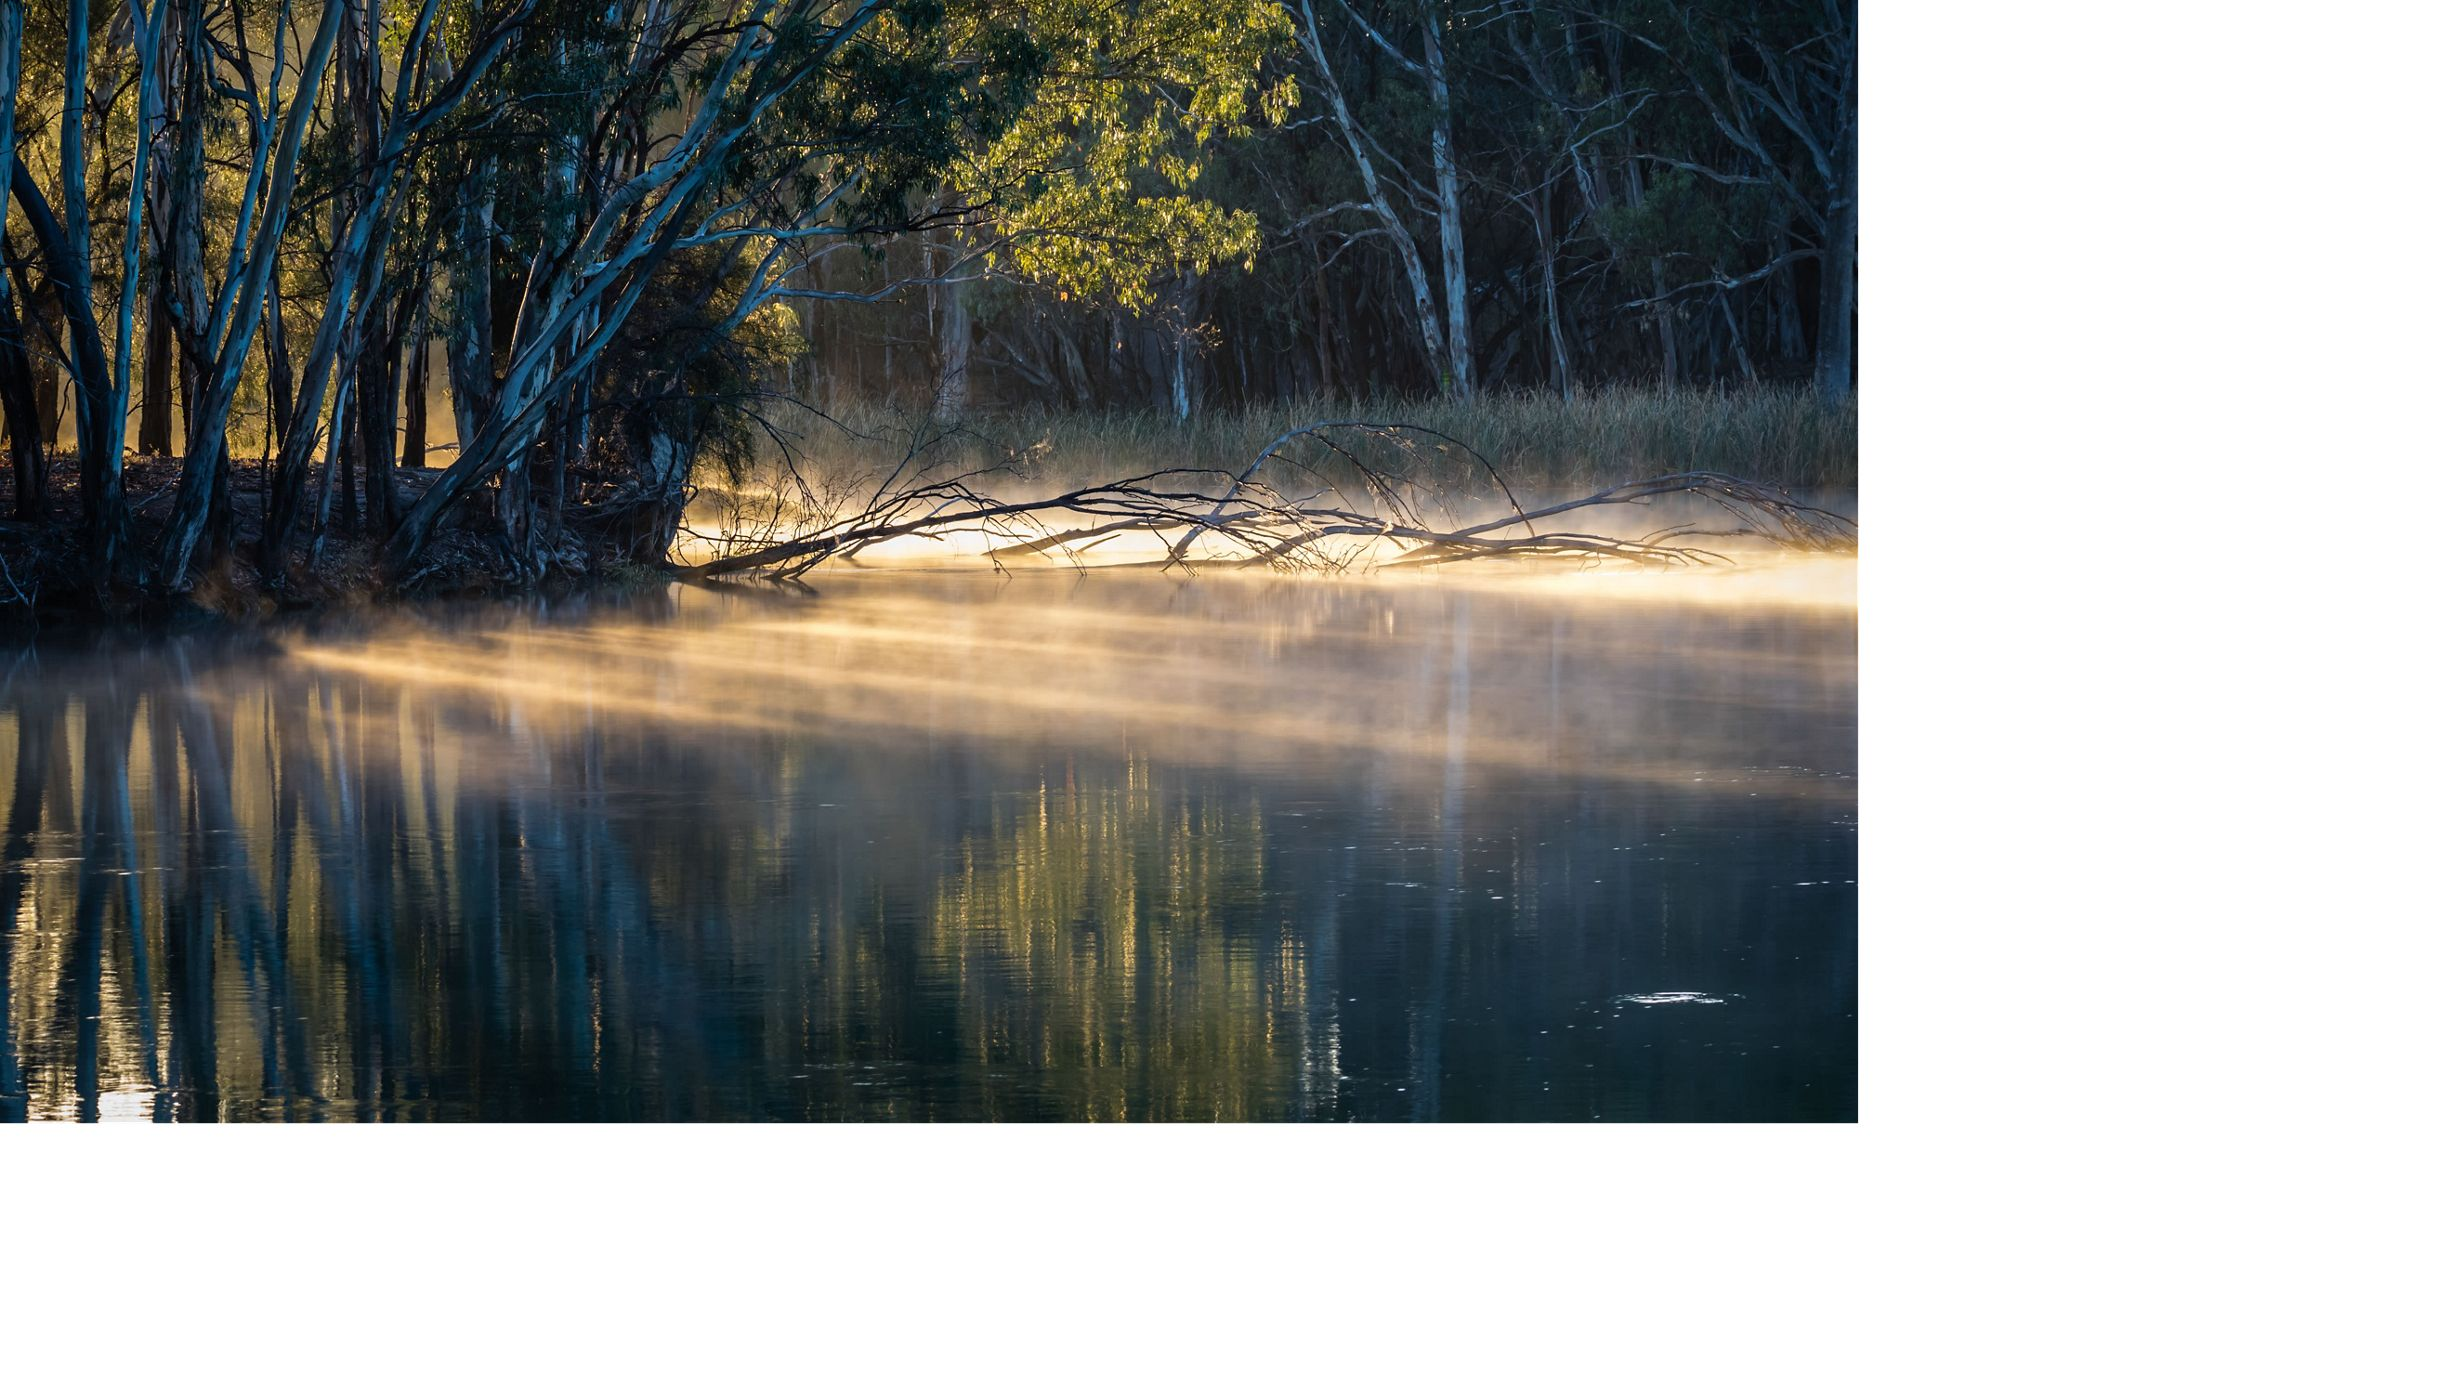 Red Gum trees line the bank of Frenchmans Creek, a short tributary of the Darling River in west New South Wales at dawn.